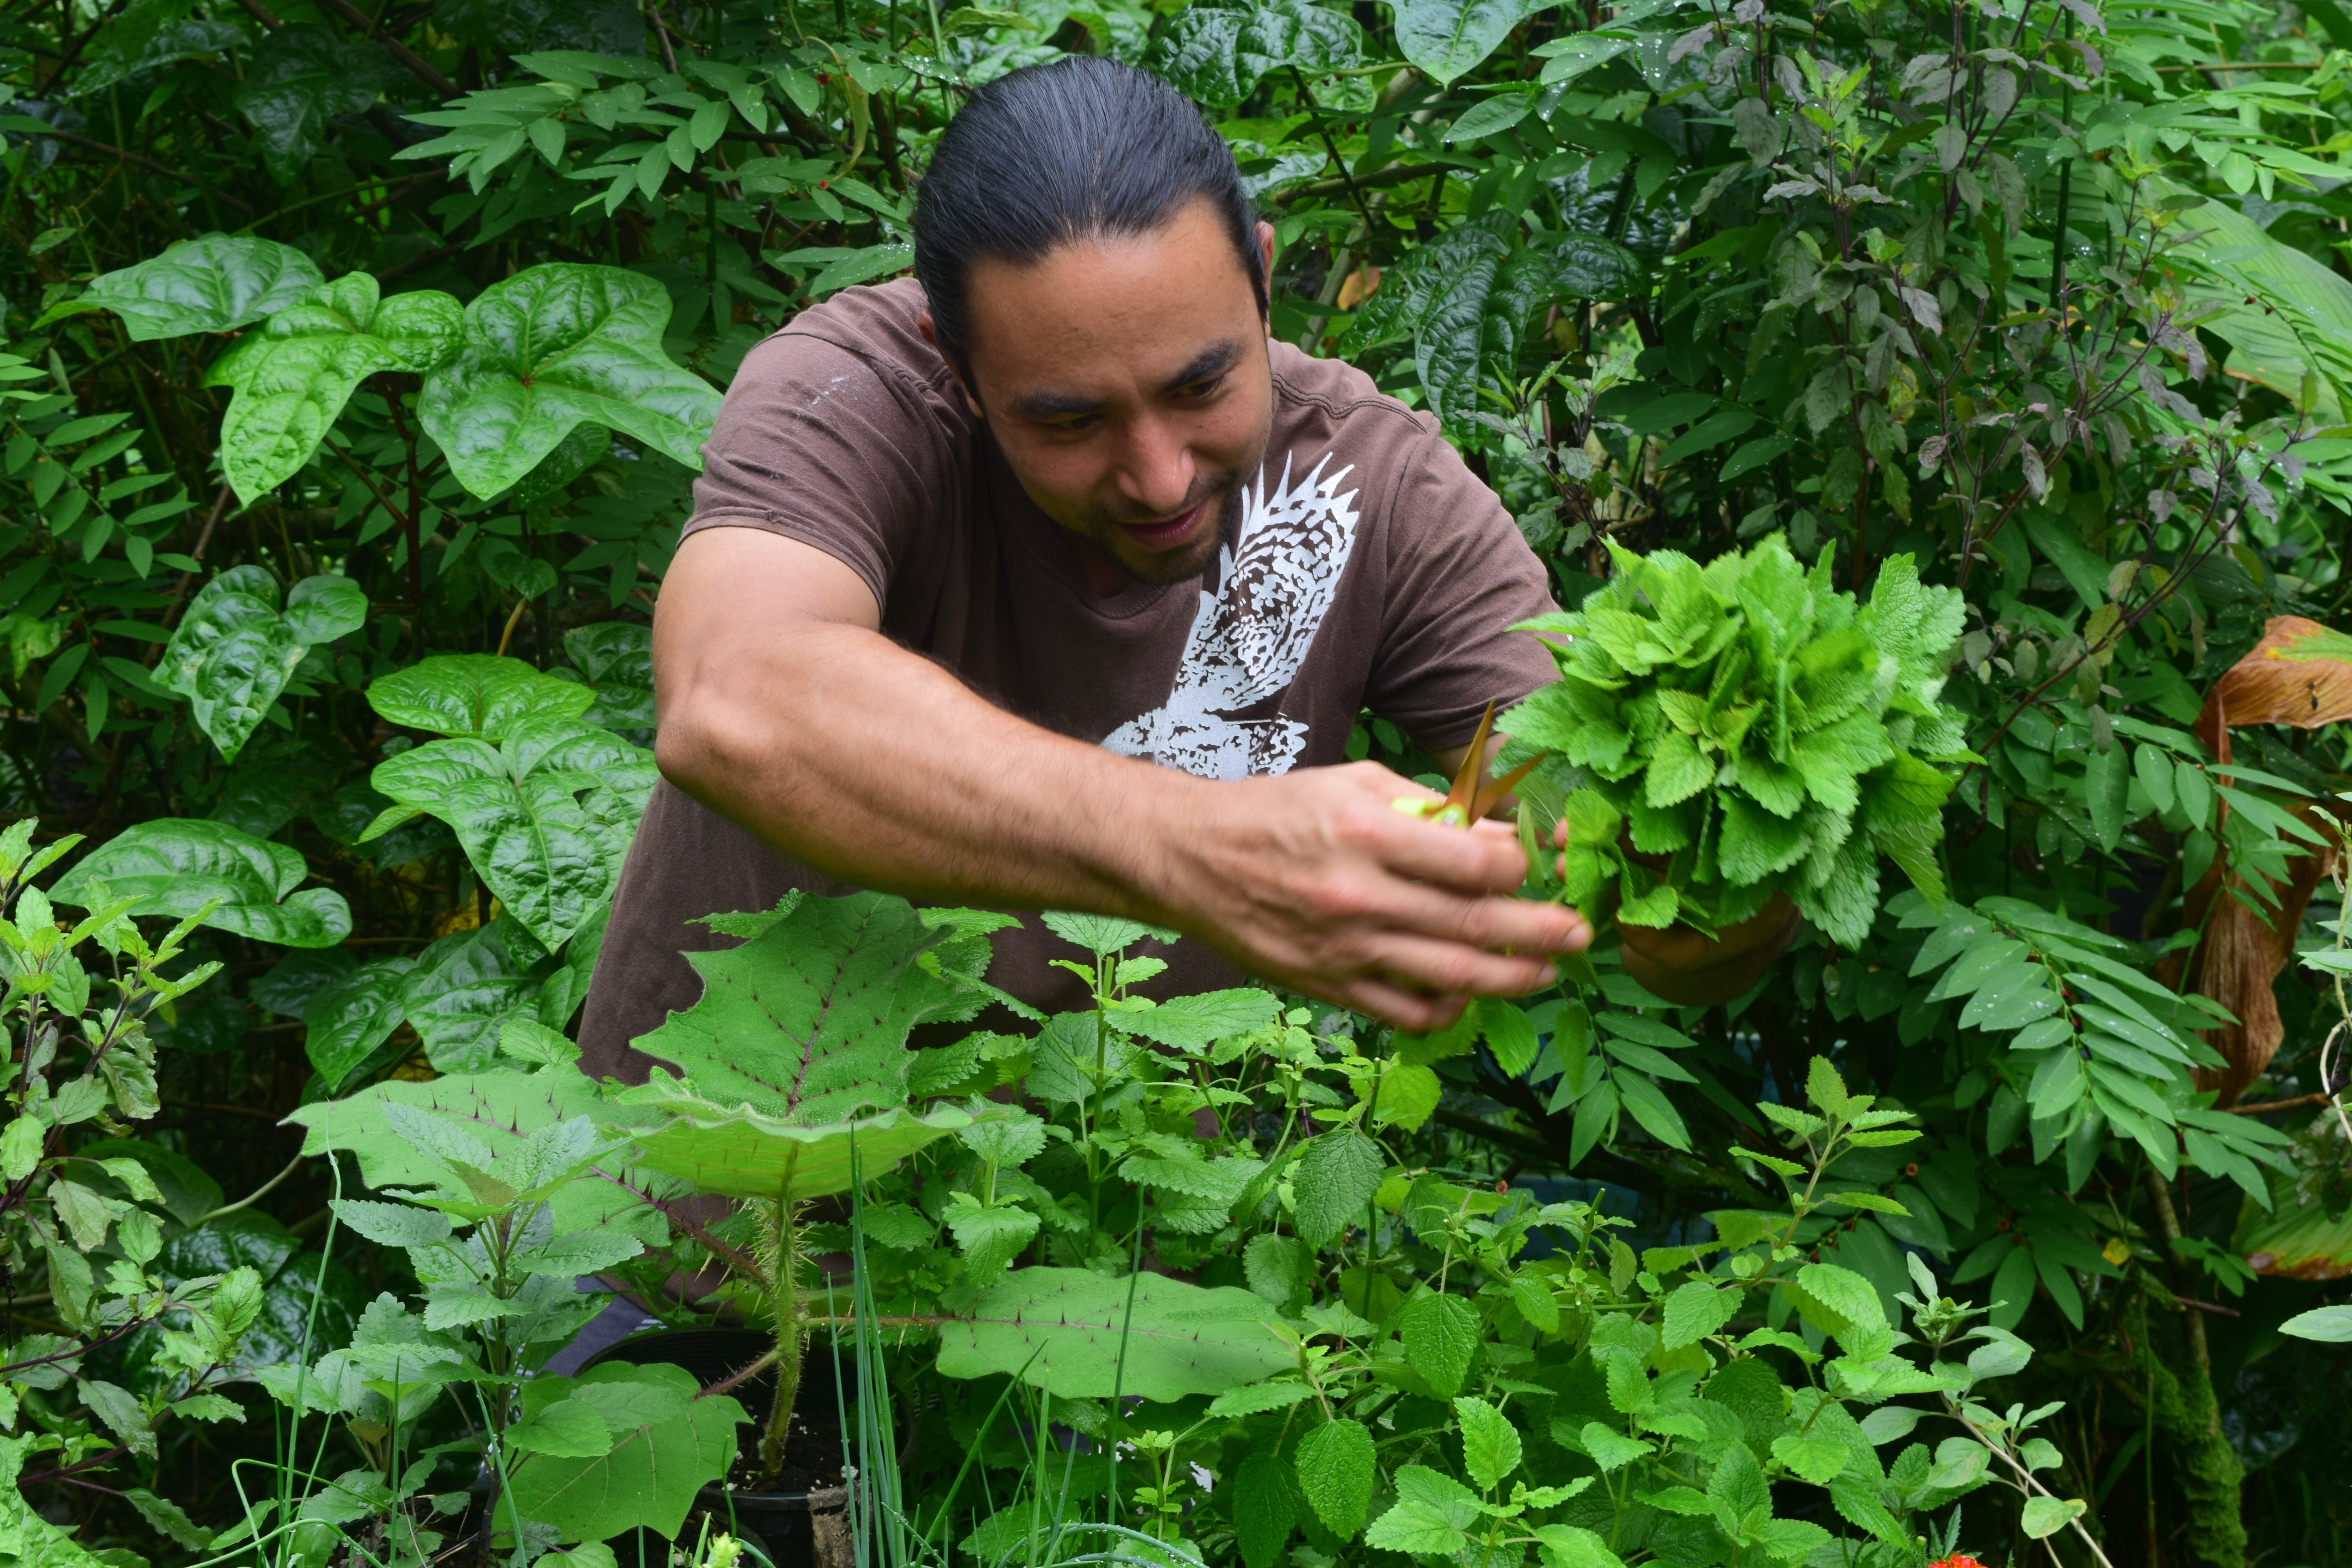 Harvesting from our permaculture garden.